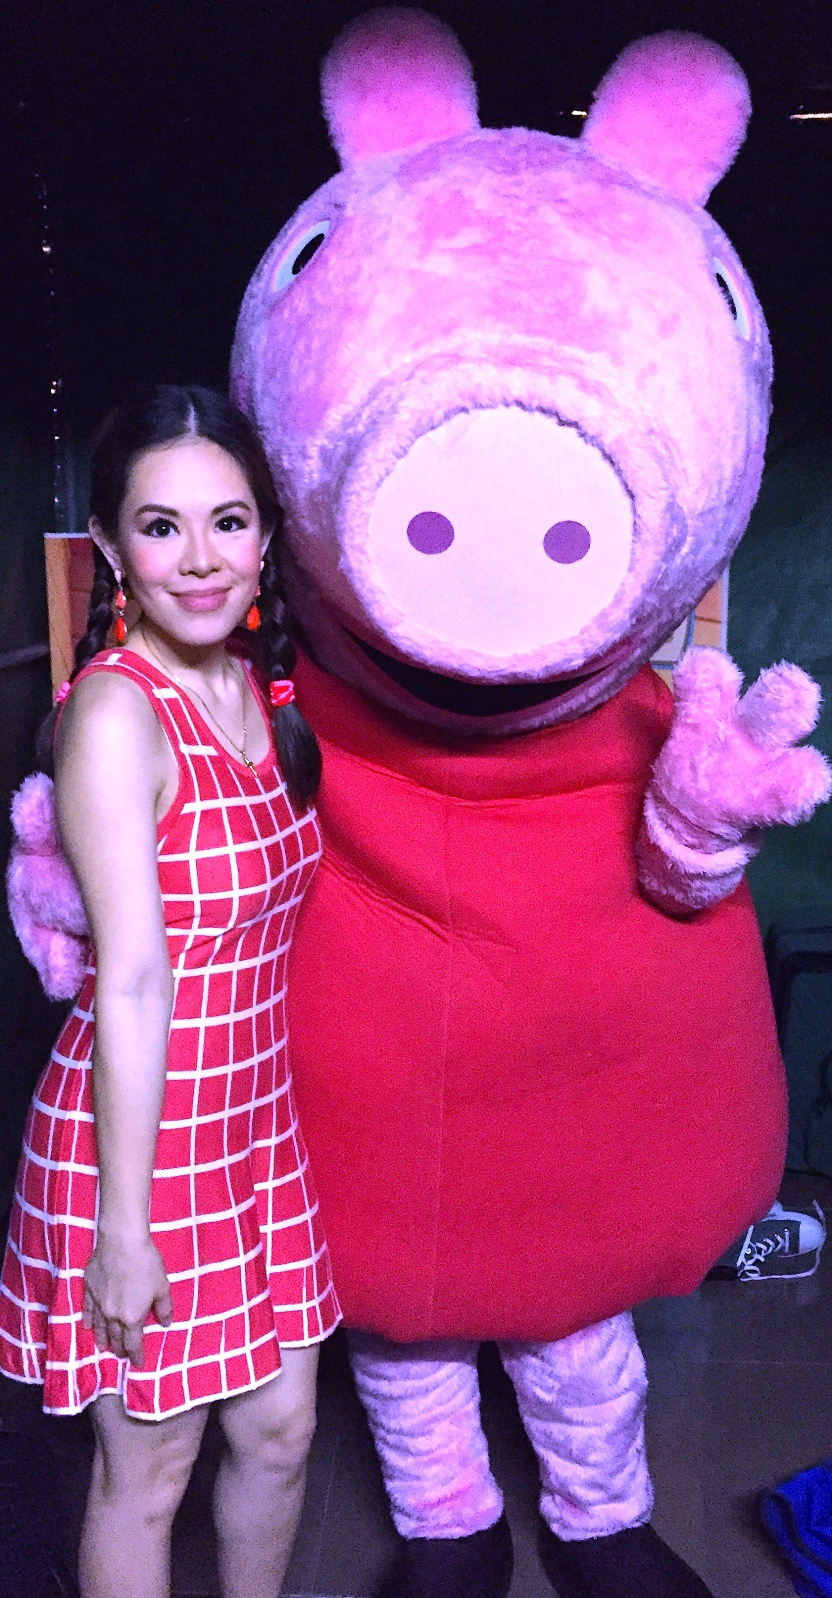 MARY WITH PEPPA PIG - BACKSTAGE